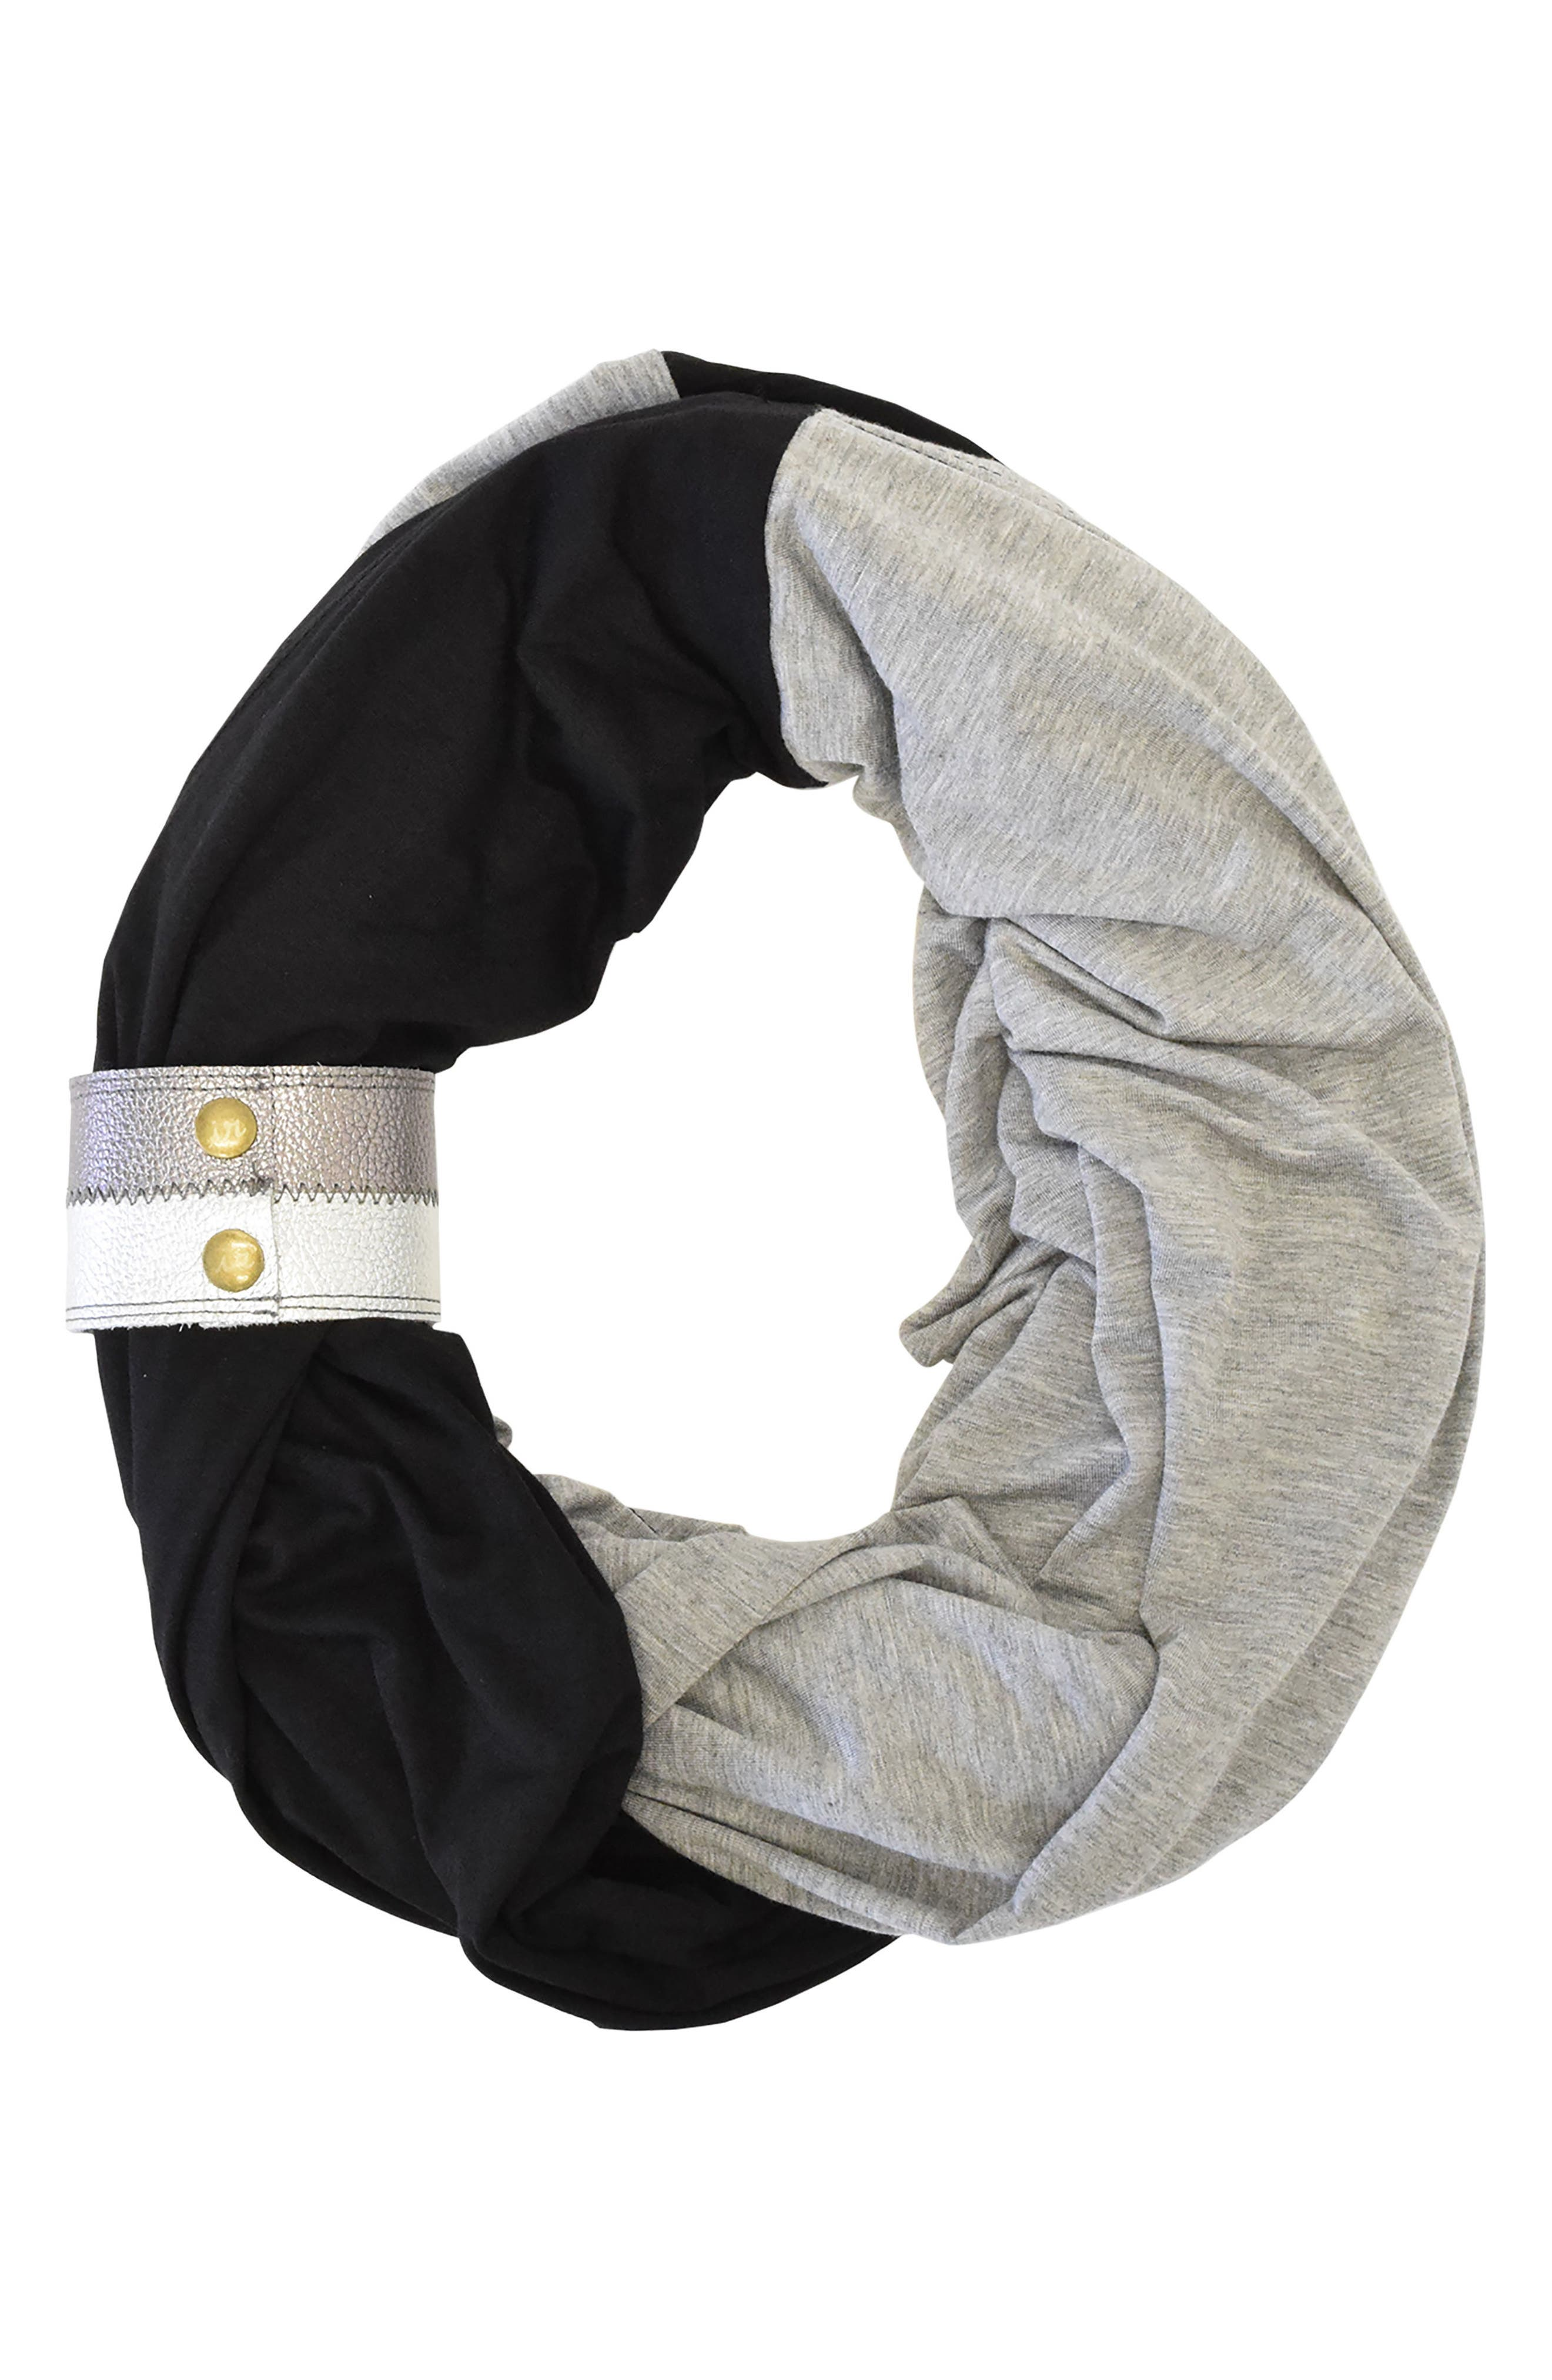 Alternate Image 1 Selected - Itzy Ritzy Infinity Nursing Scarf with Leather Cuff